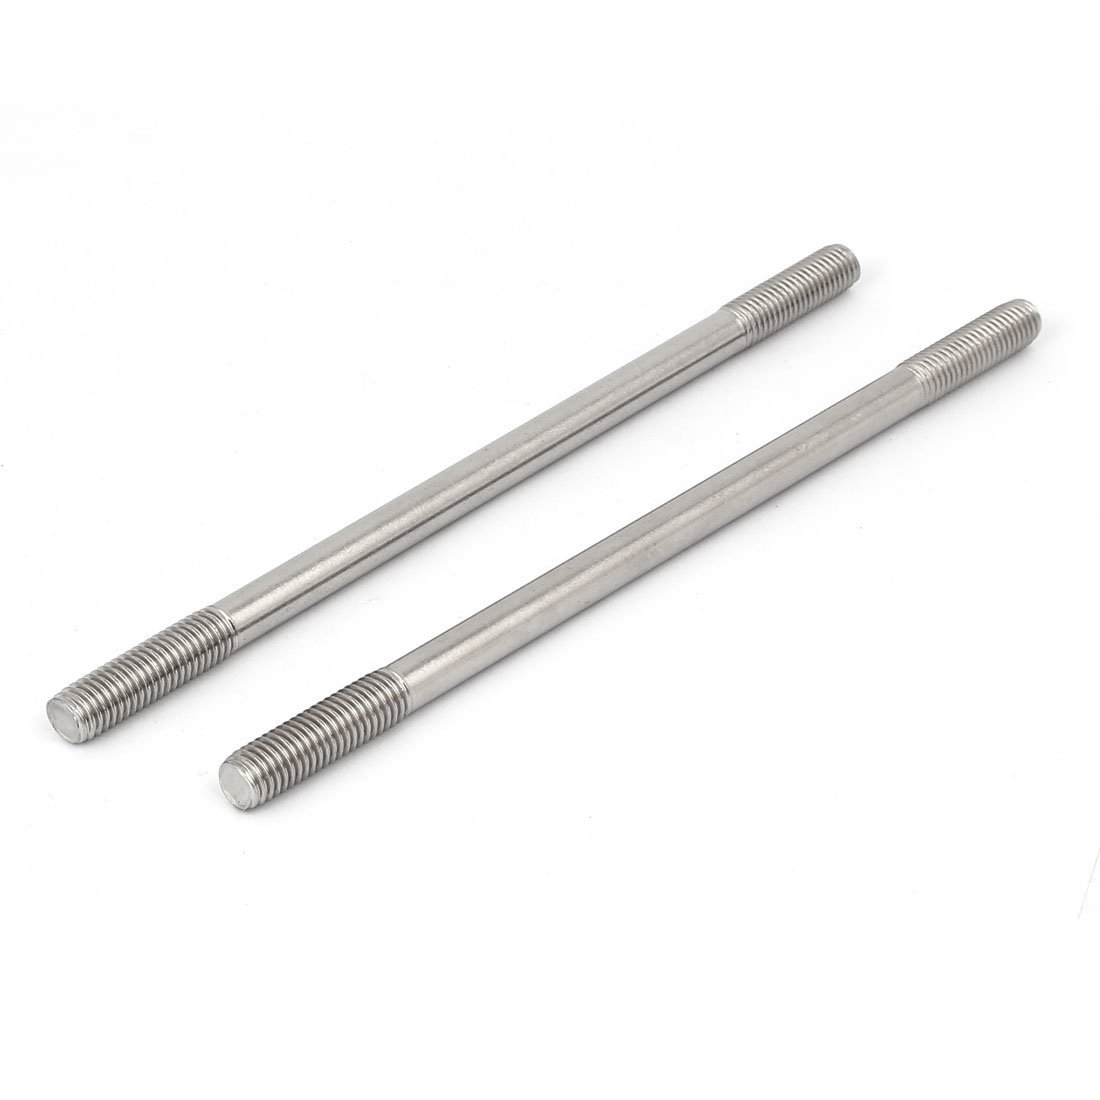 M10x200mm Double End Thread Stainless Steel 304 Tight Push Rod Adjustable Stud 5pcs